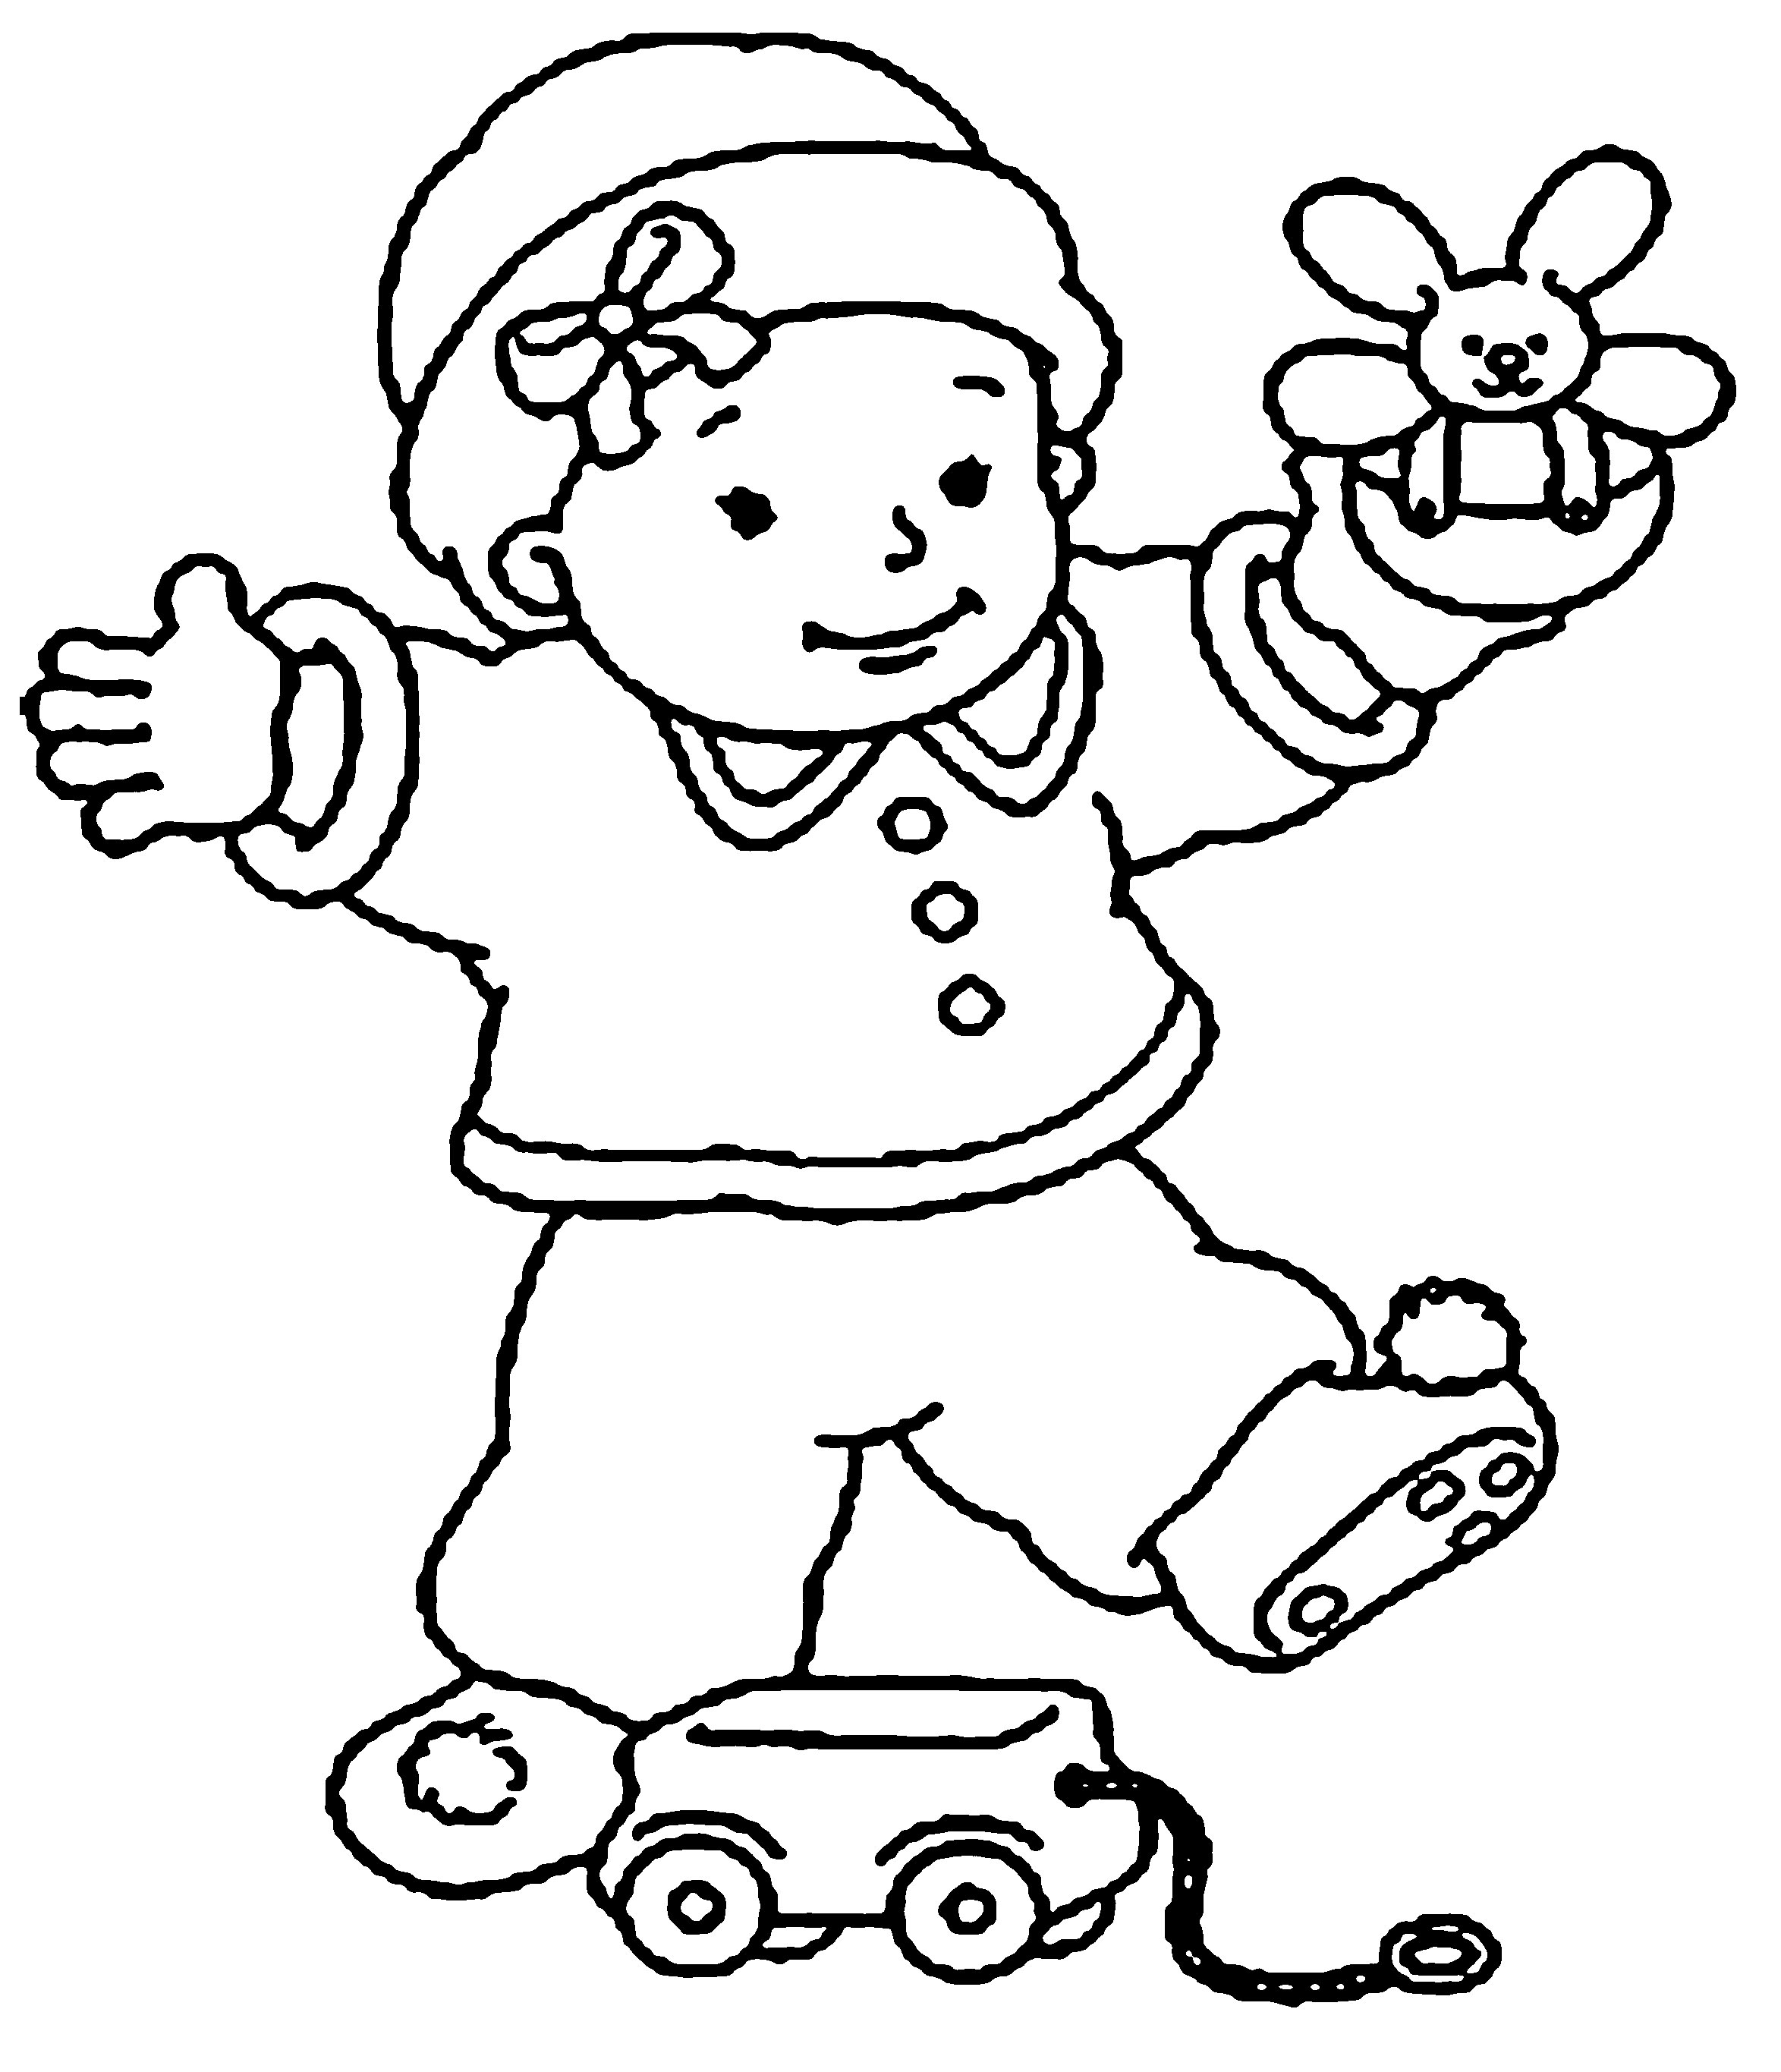 newborn baby coloring pages - baby coloring pages for download